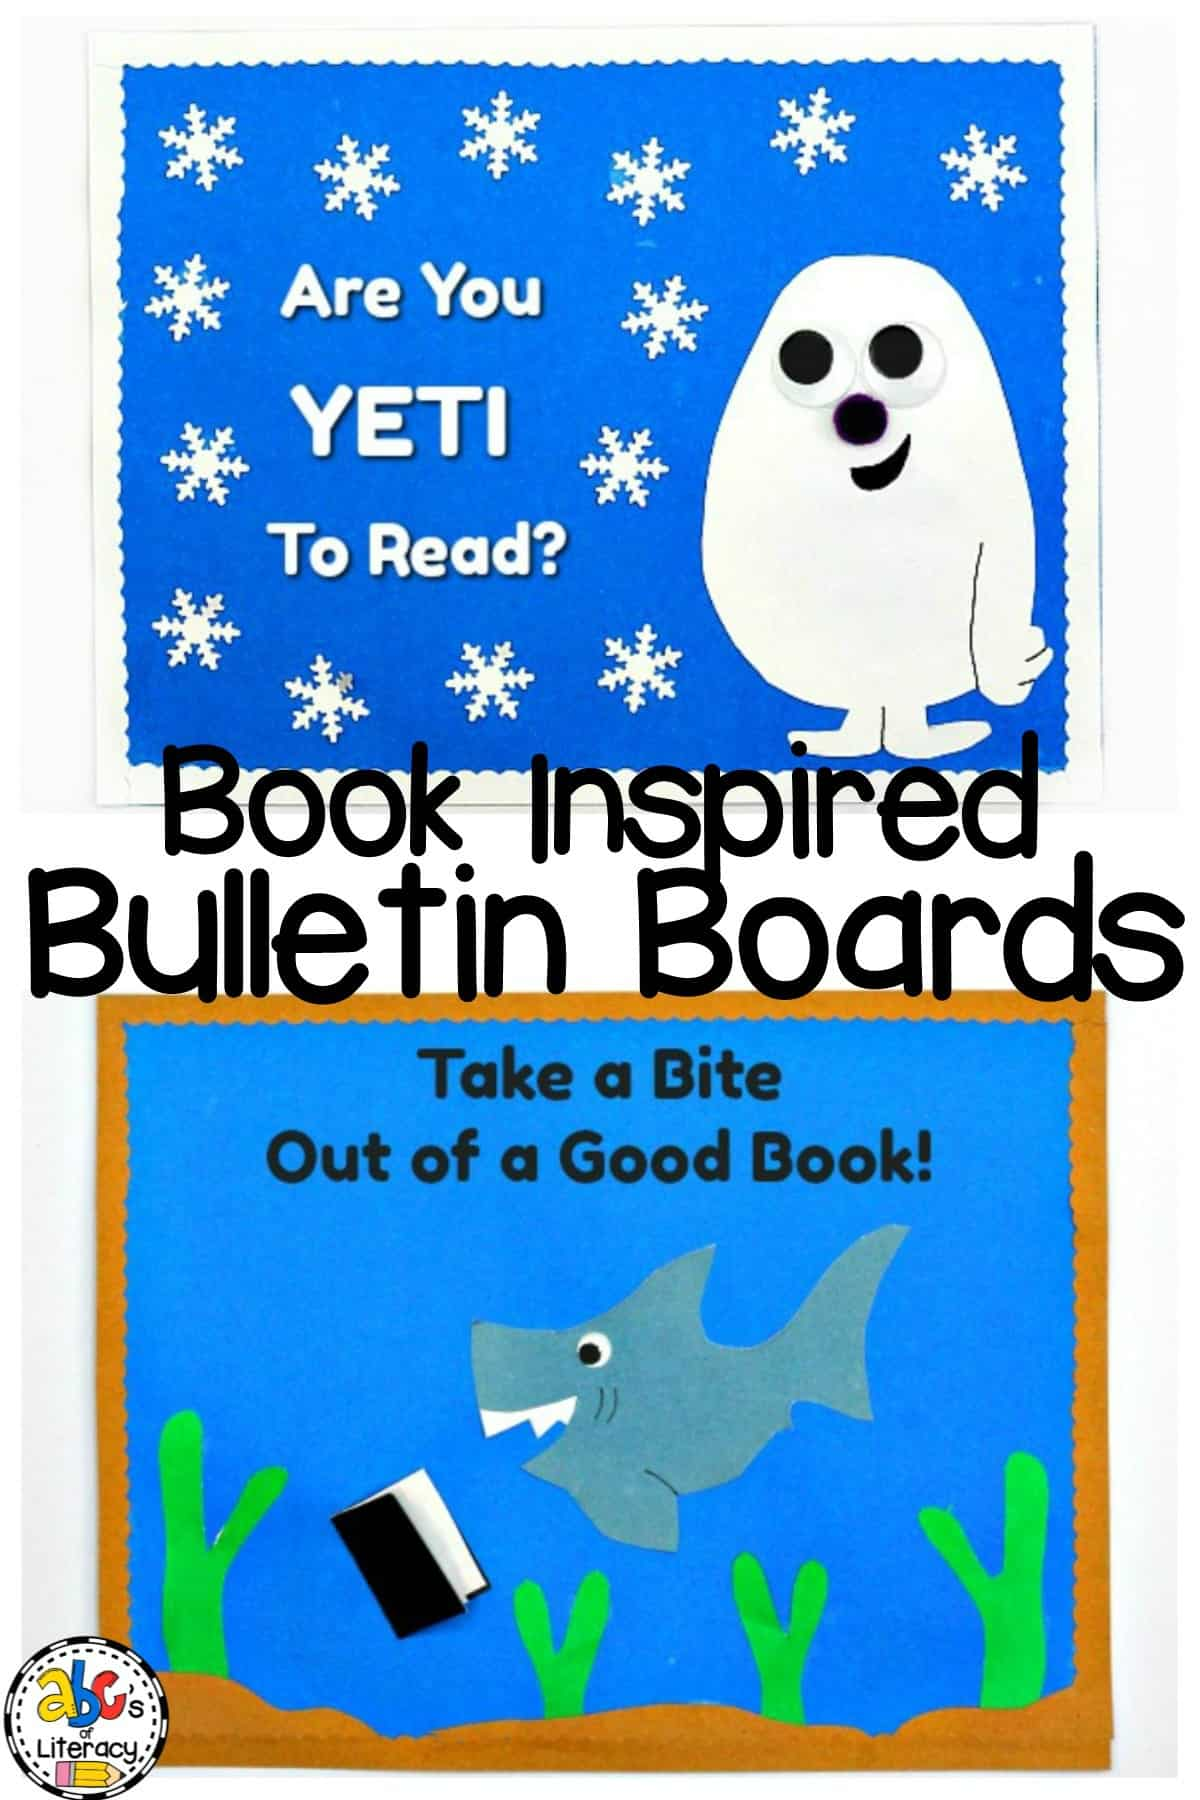 """10 Book Inspired Bulletin Boards Including """"Are You Yeti To Read?"""" and """"Take a Bite Out of a Good Book!"""""""